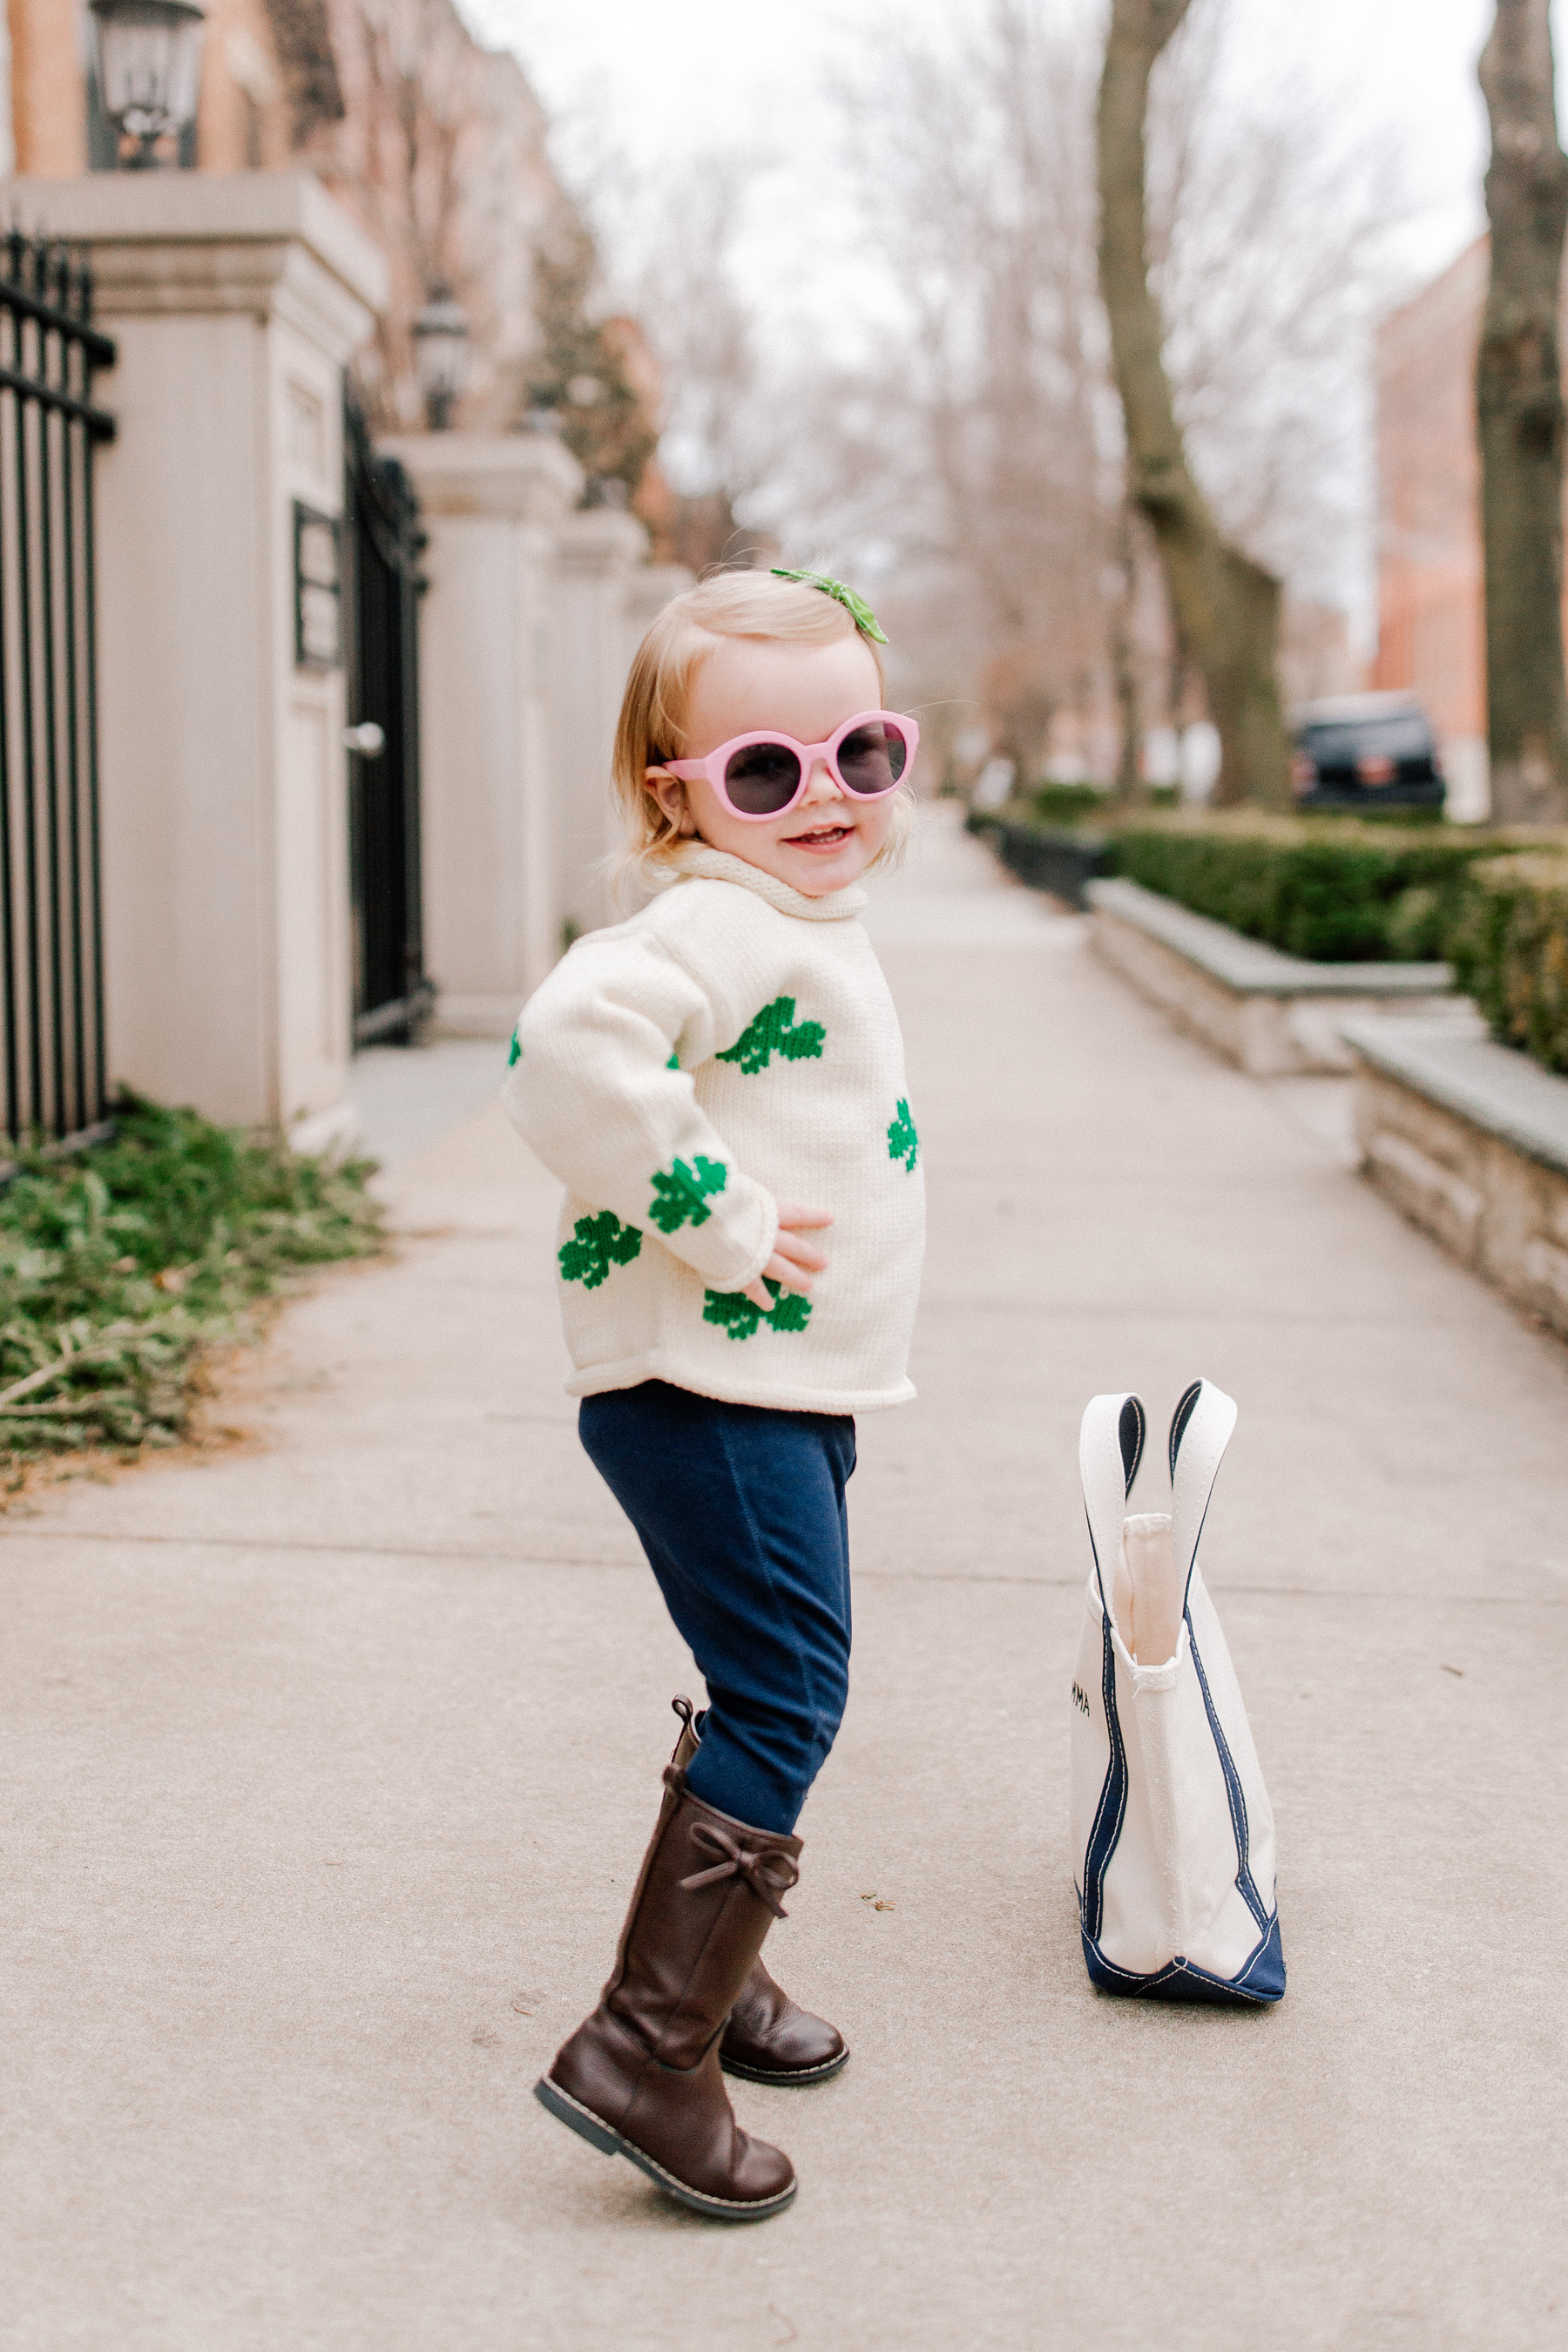 Emma's Outfit: Claver Shamrock Sweater / L.L. Bean Tote c/o / Gap Kids Jeggings and Boots / Janie & Jack Sunglasses / Little Makes Big Bow c/o